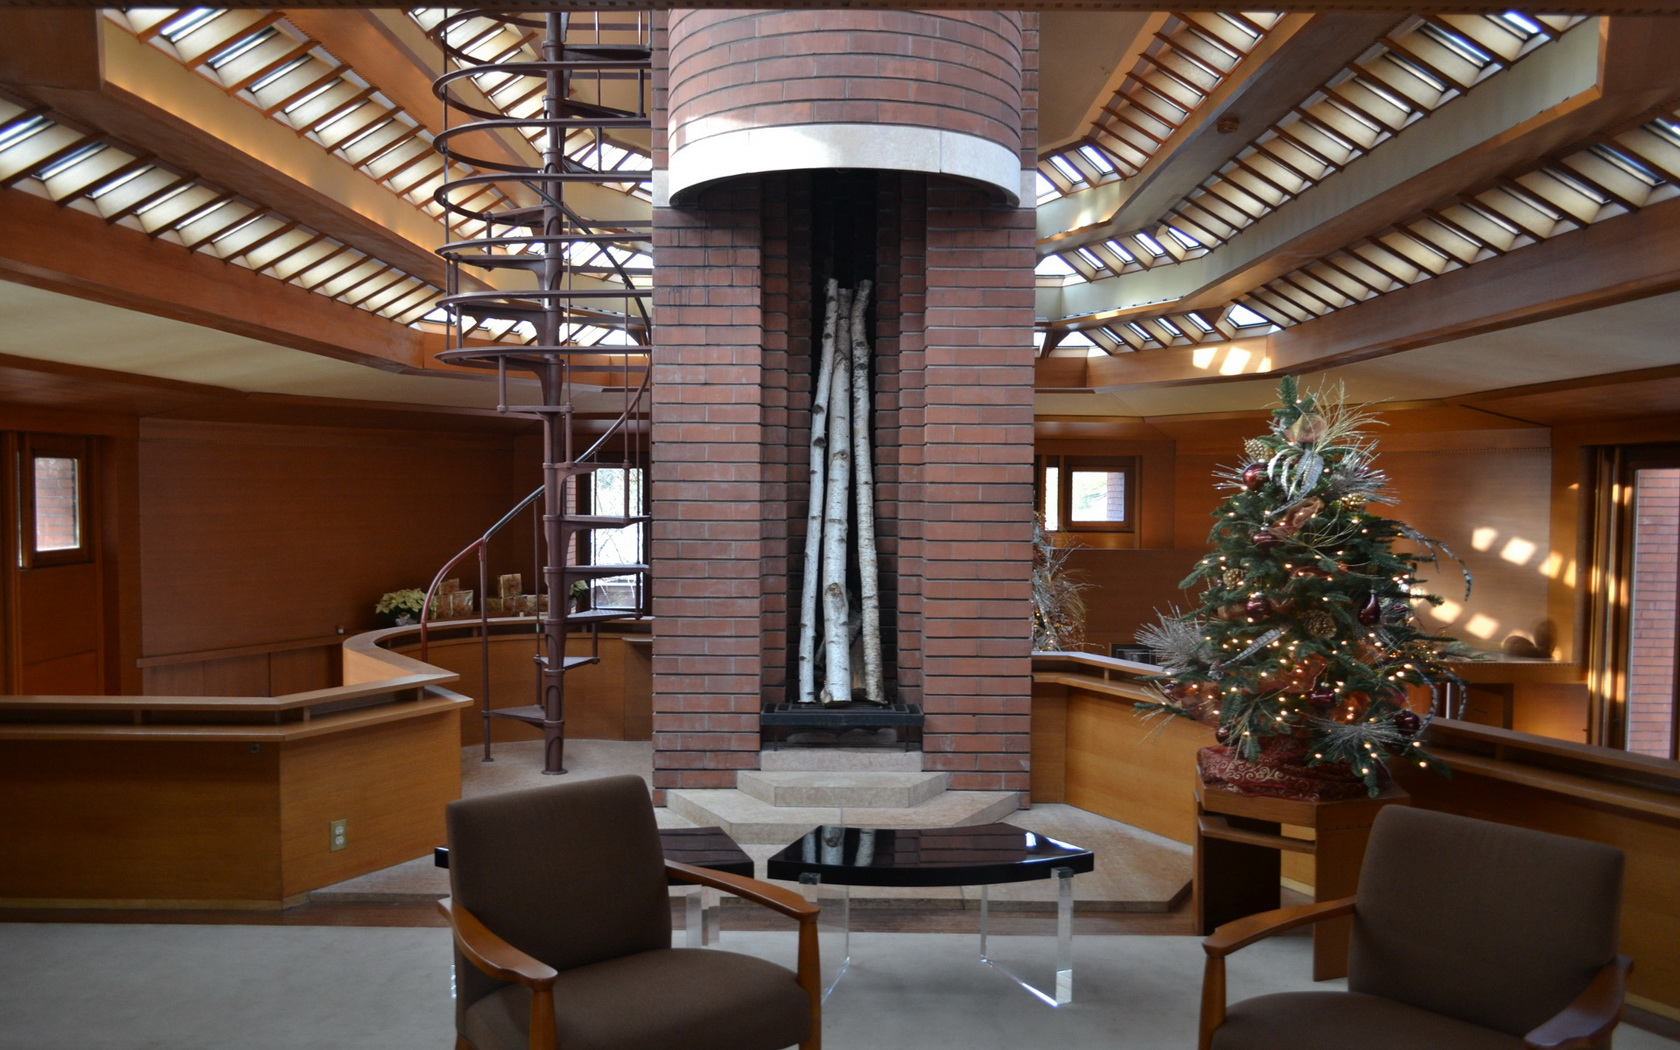 Architecture Indoors Interior Design Frank Lloyd Wright Wallpaper